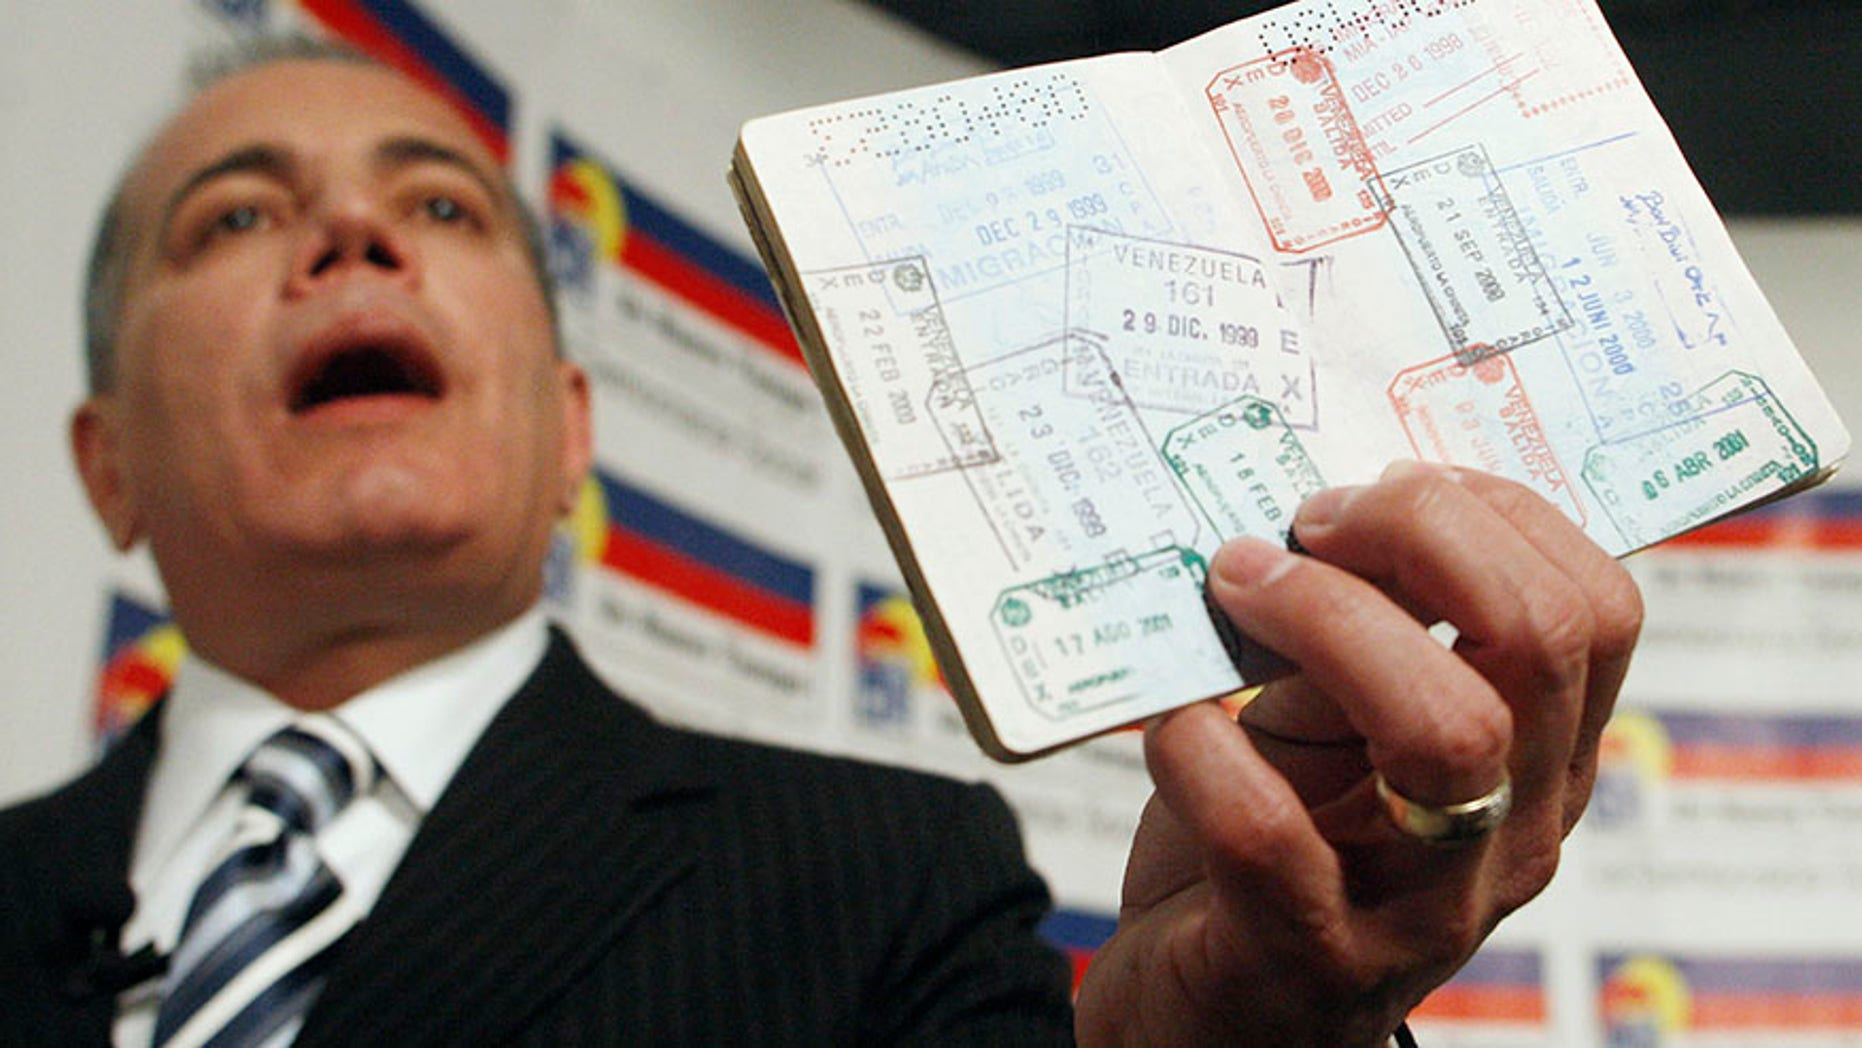 Venezuelan opposition leader Manuel Rosales during a news conference in Lima October 1, 2009.